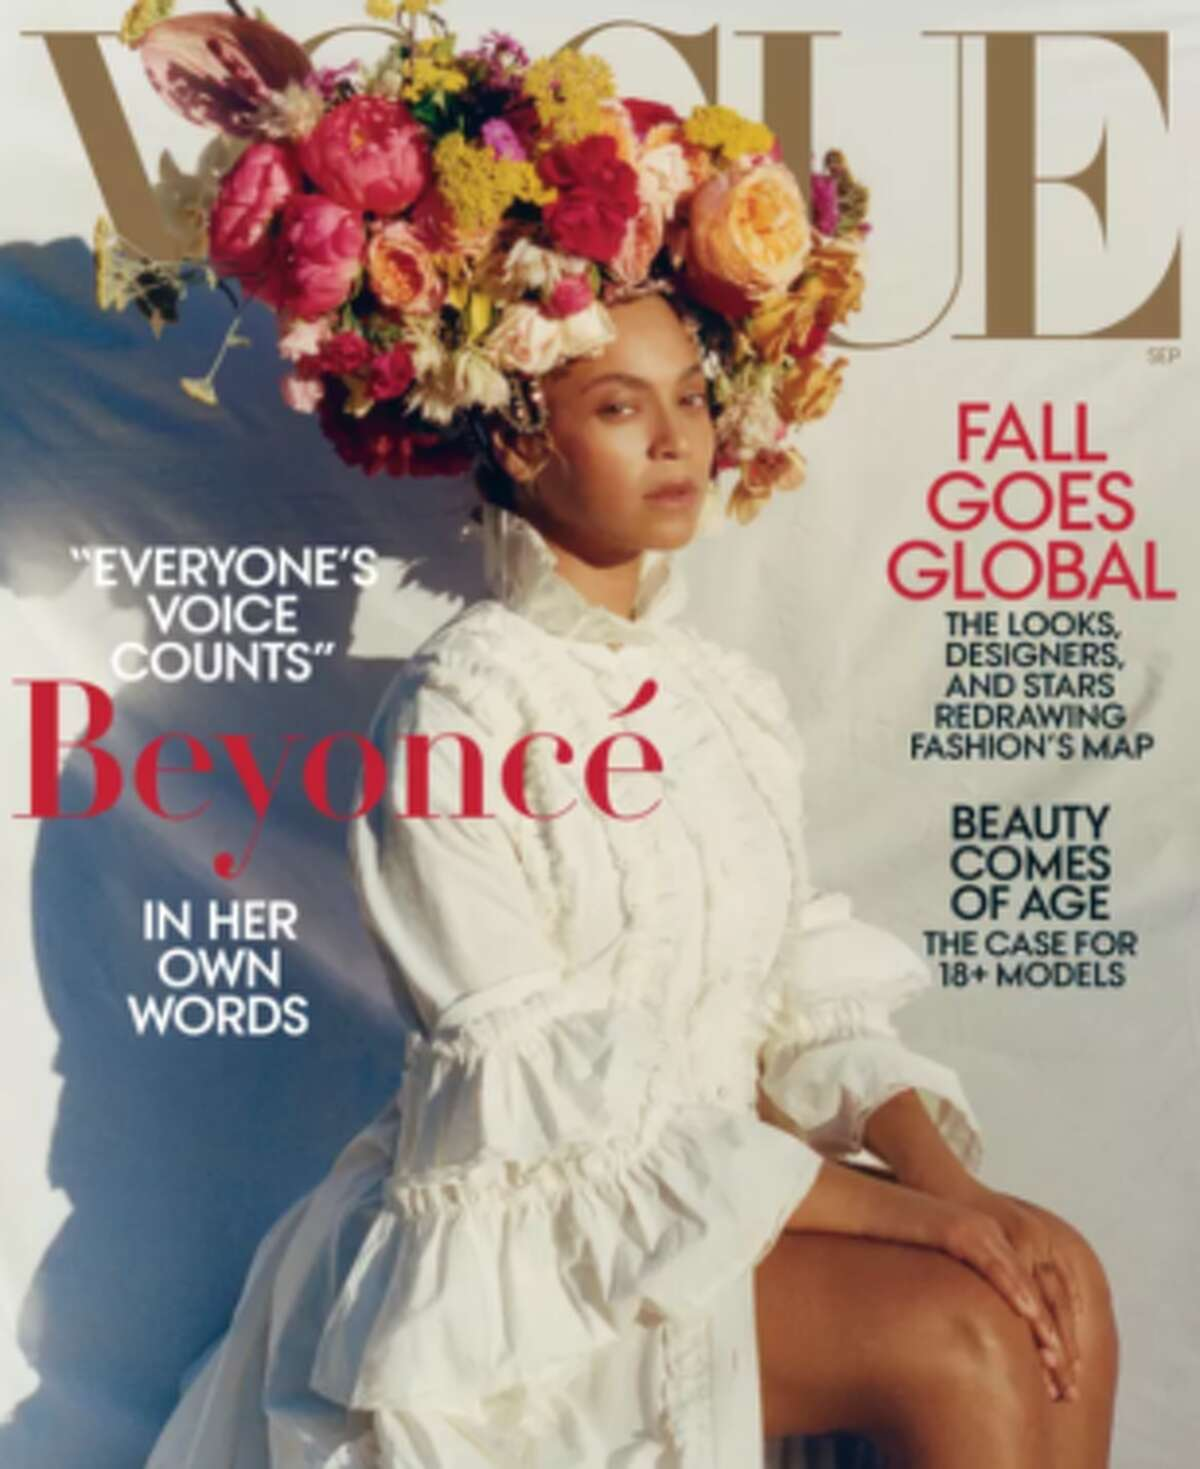 Black women dominated the magazine covers of the September fall fashion issues.